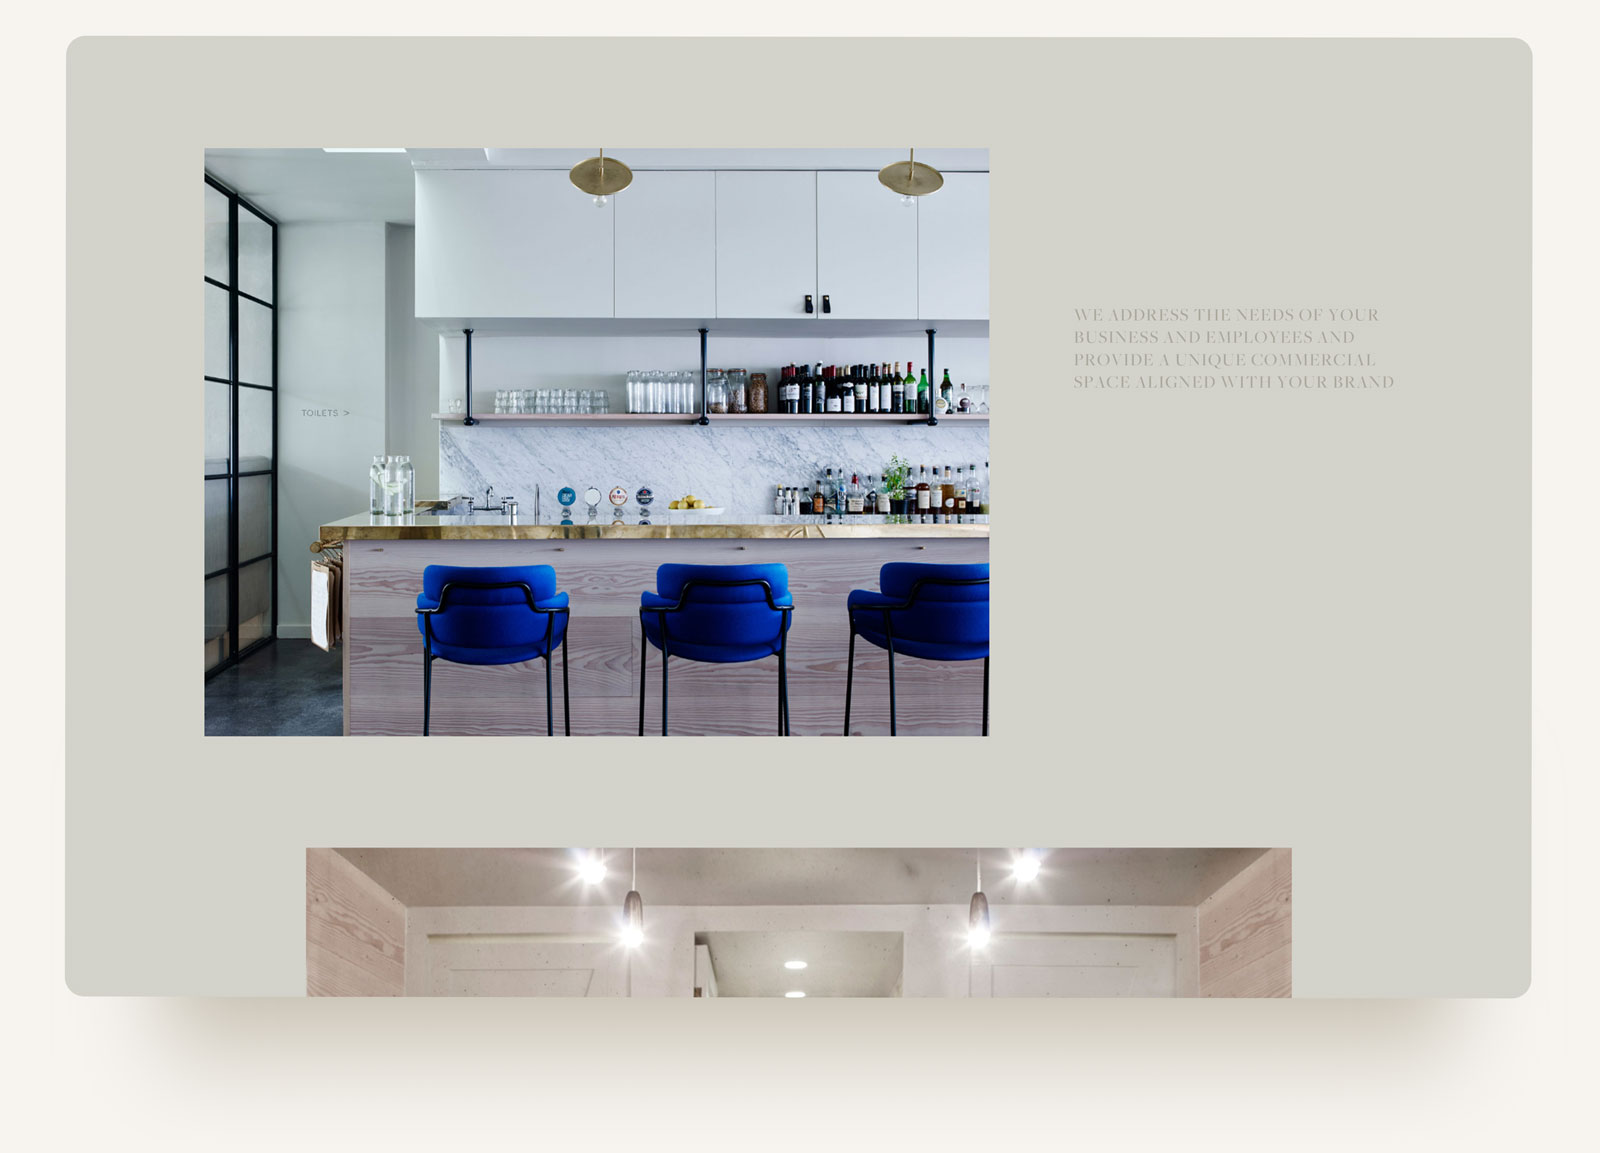 House of Grey interiors design studio with editorial grid and pull quote on neutral background. squarespace website design and build by Brittany Hurdle beckon webeckon